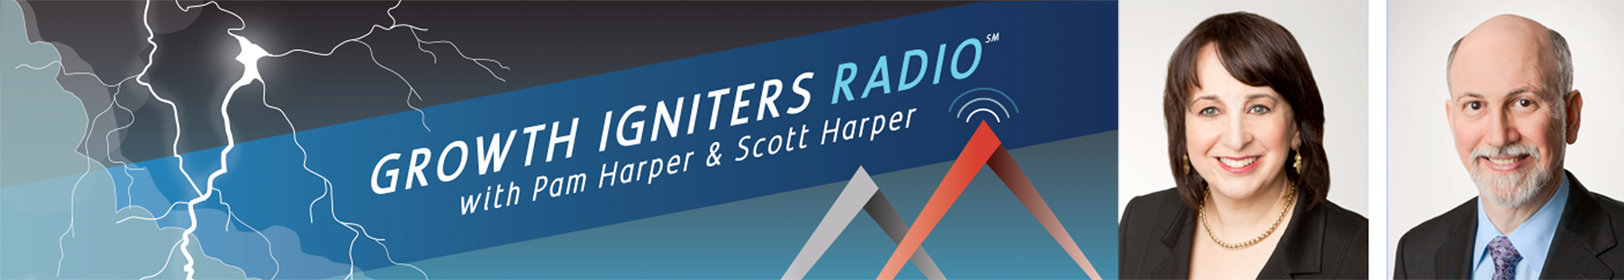 growth igniters radioWith Pam Harper and Scott Harper